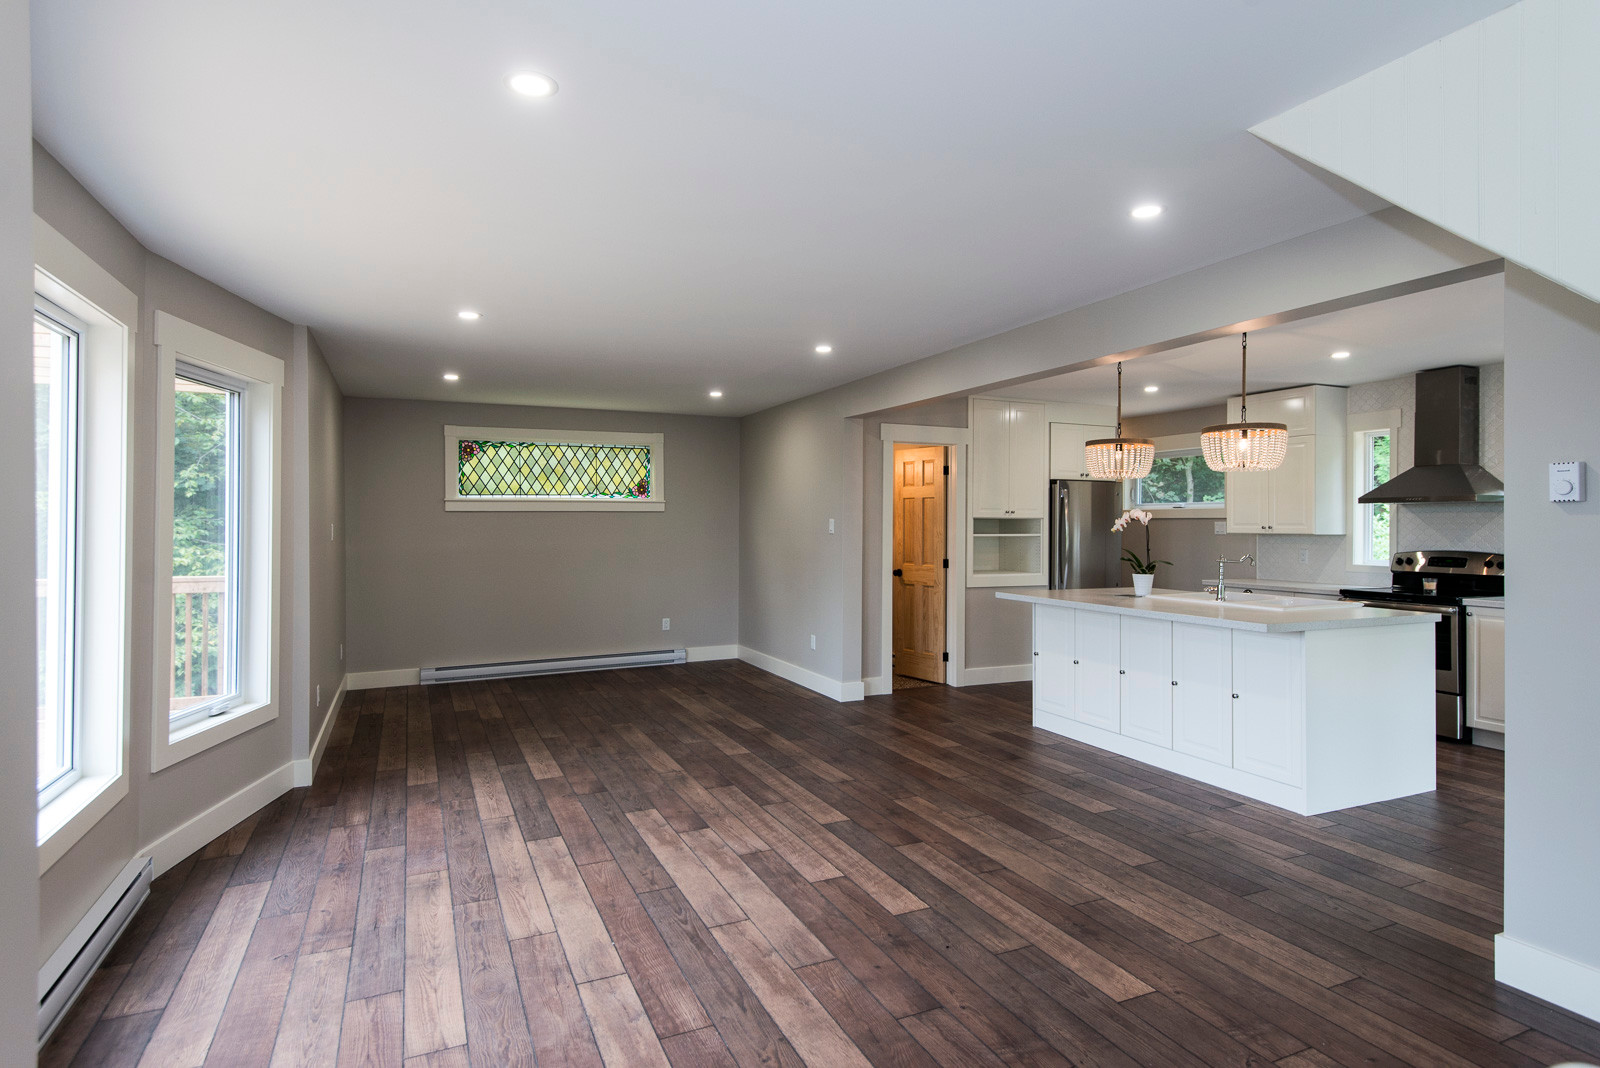 Full open concept renovation done in this 100 year old home.